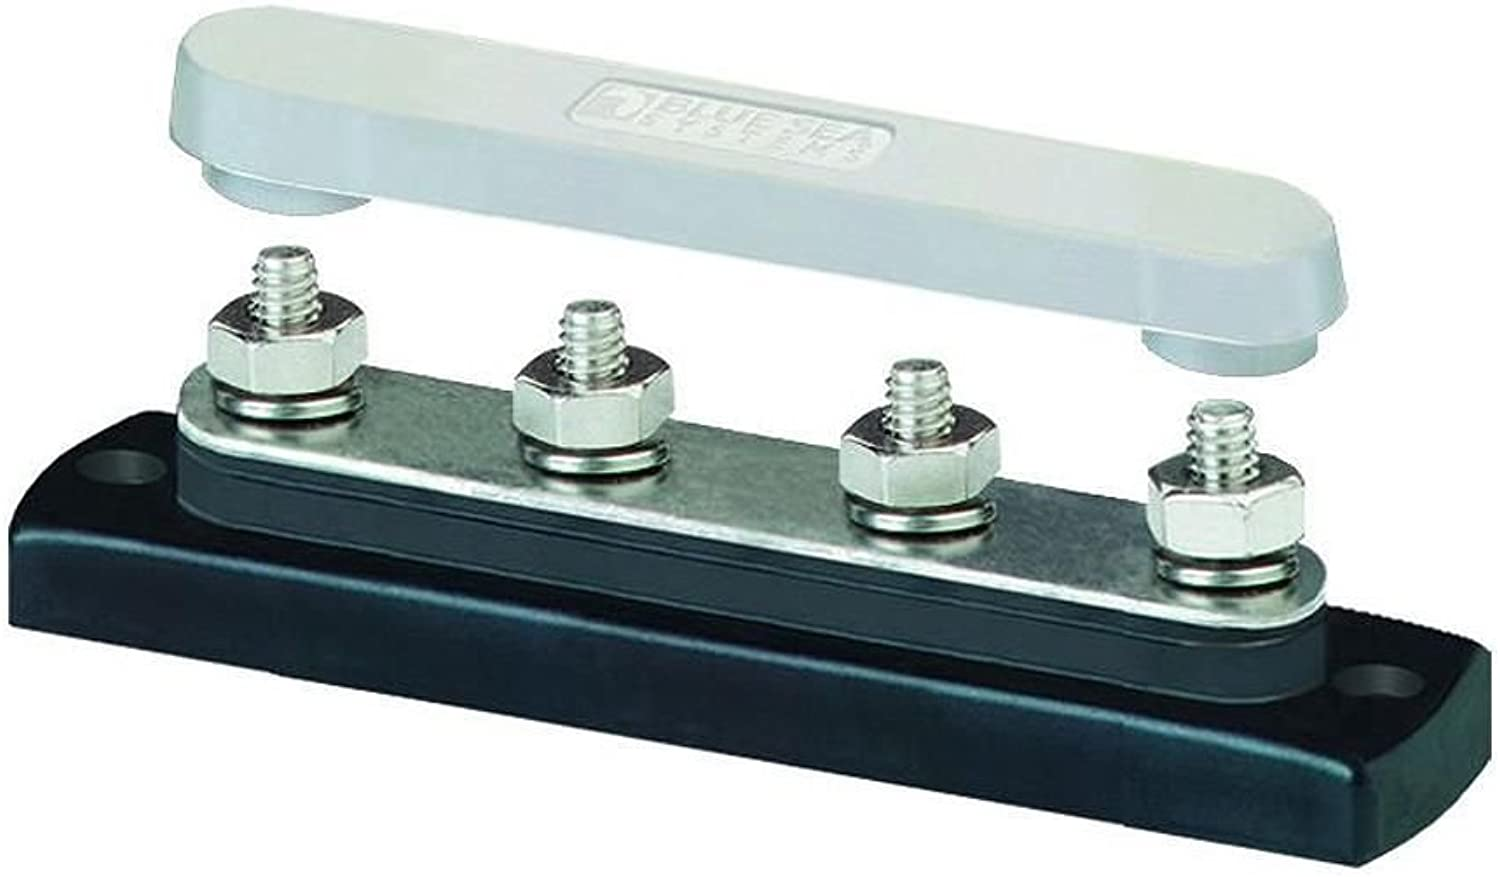 blueee Sea 2315 Minibus 4X1032 Stud Common W Cover Electrical BUSBars Connectors